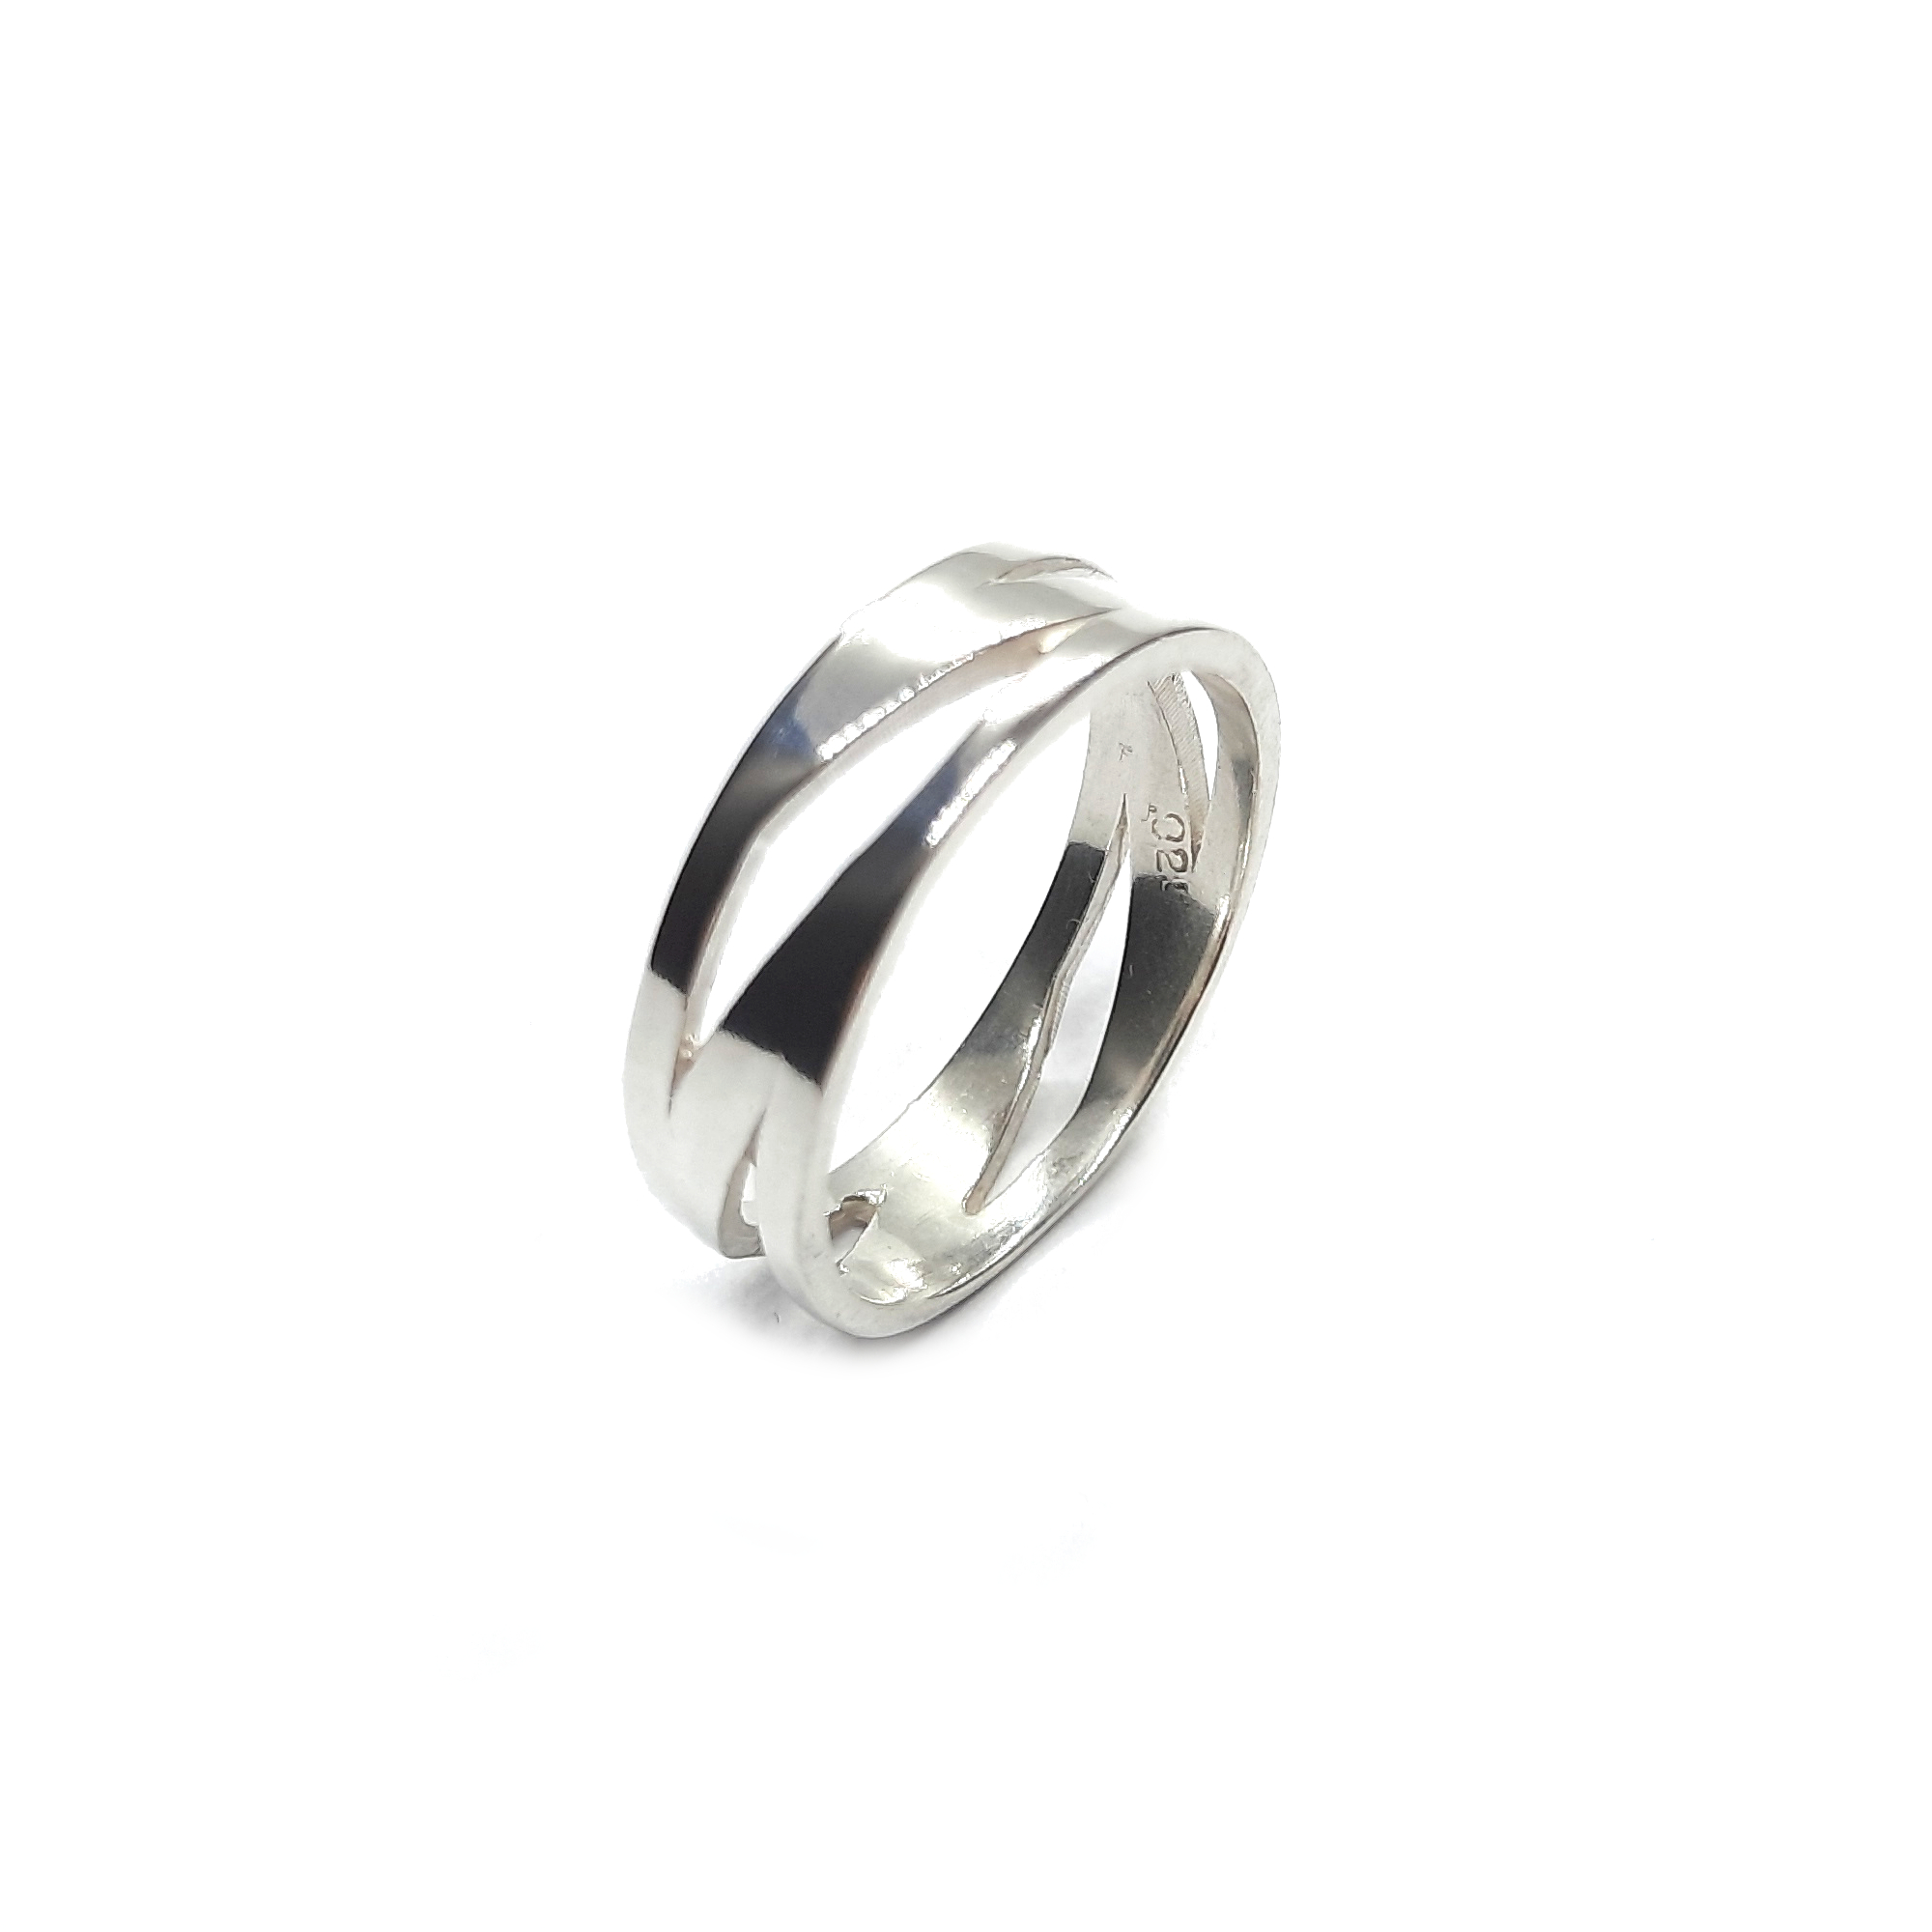 Silver ring - R002242